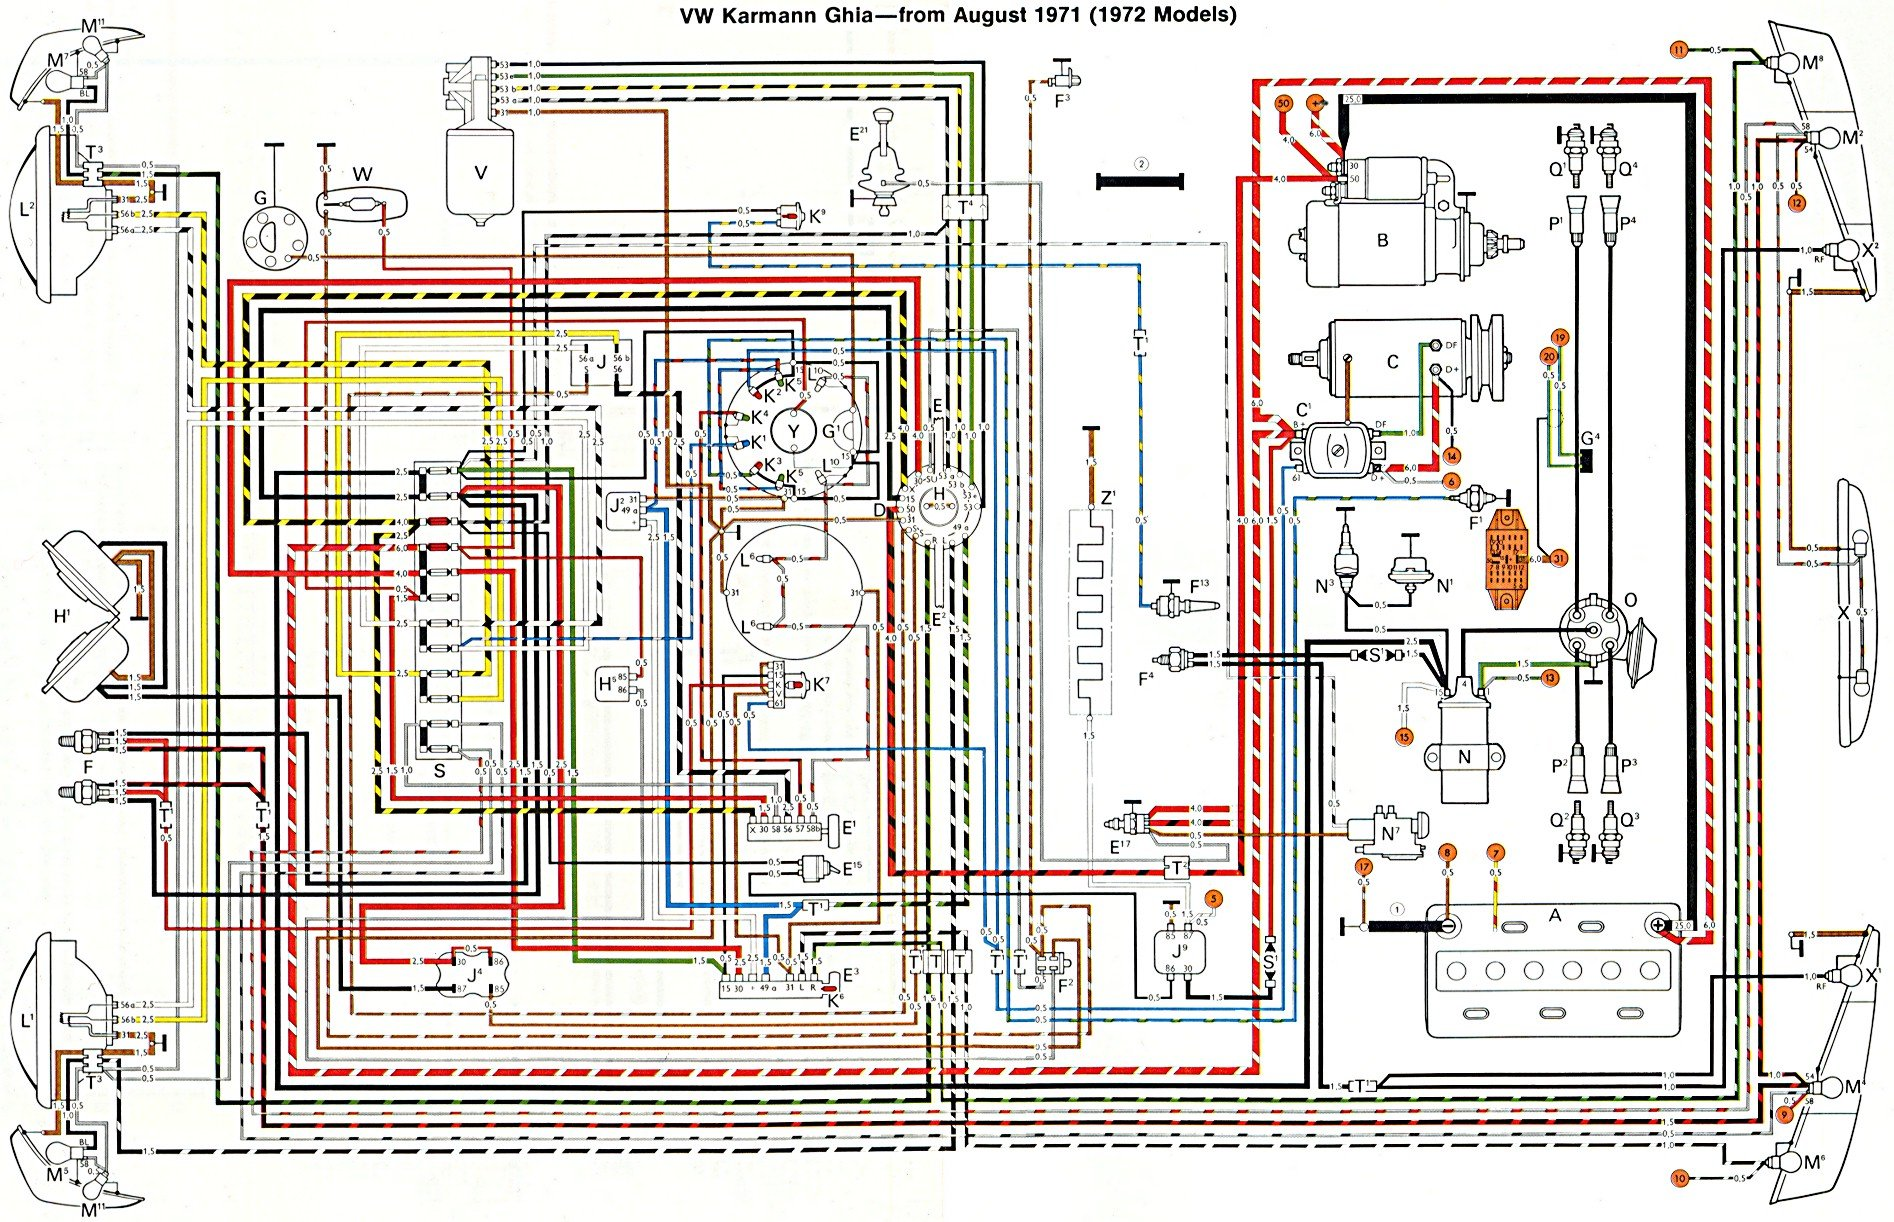 72ghia thesamba com karmann ghia wiring diagrams 1971 camaro wiring harness at mifinder.co